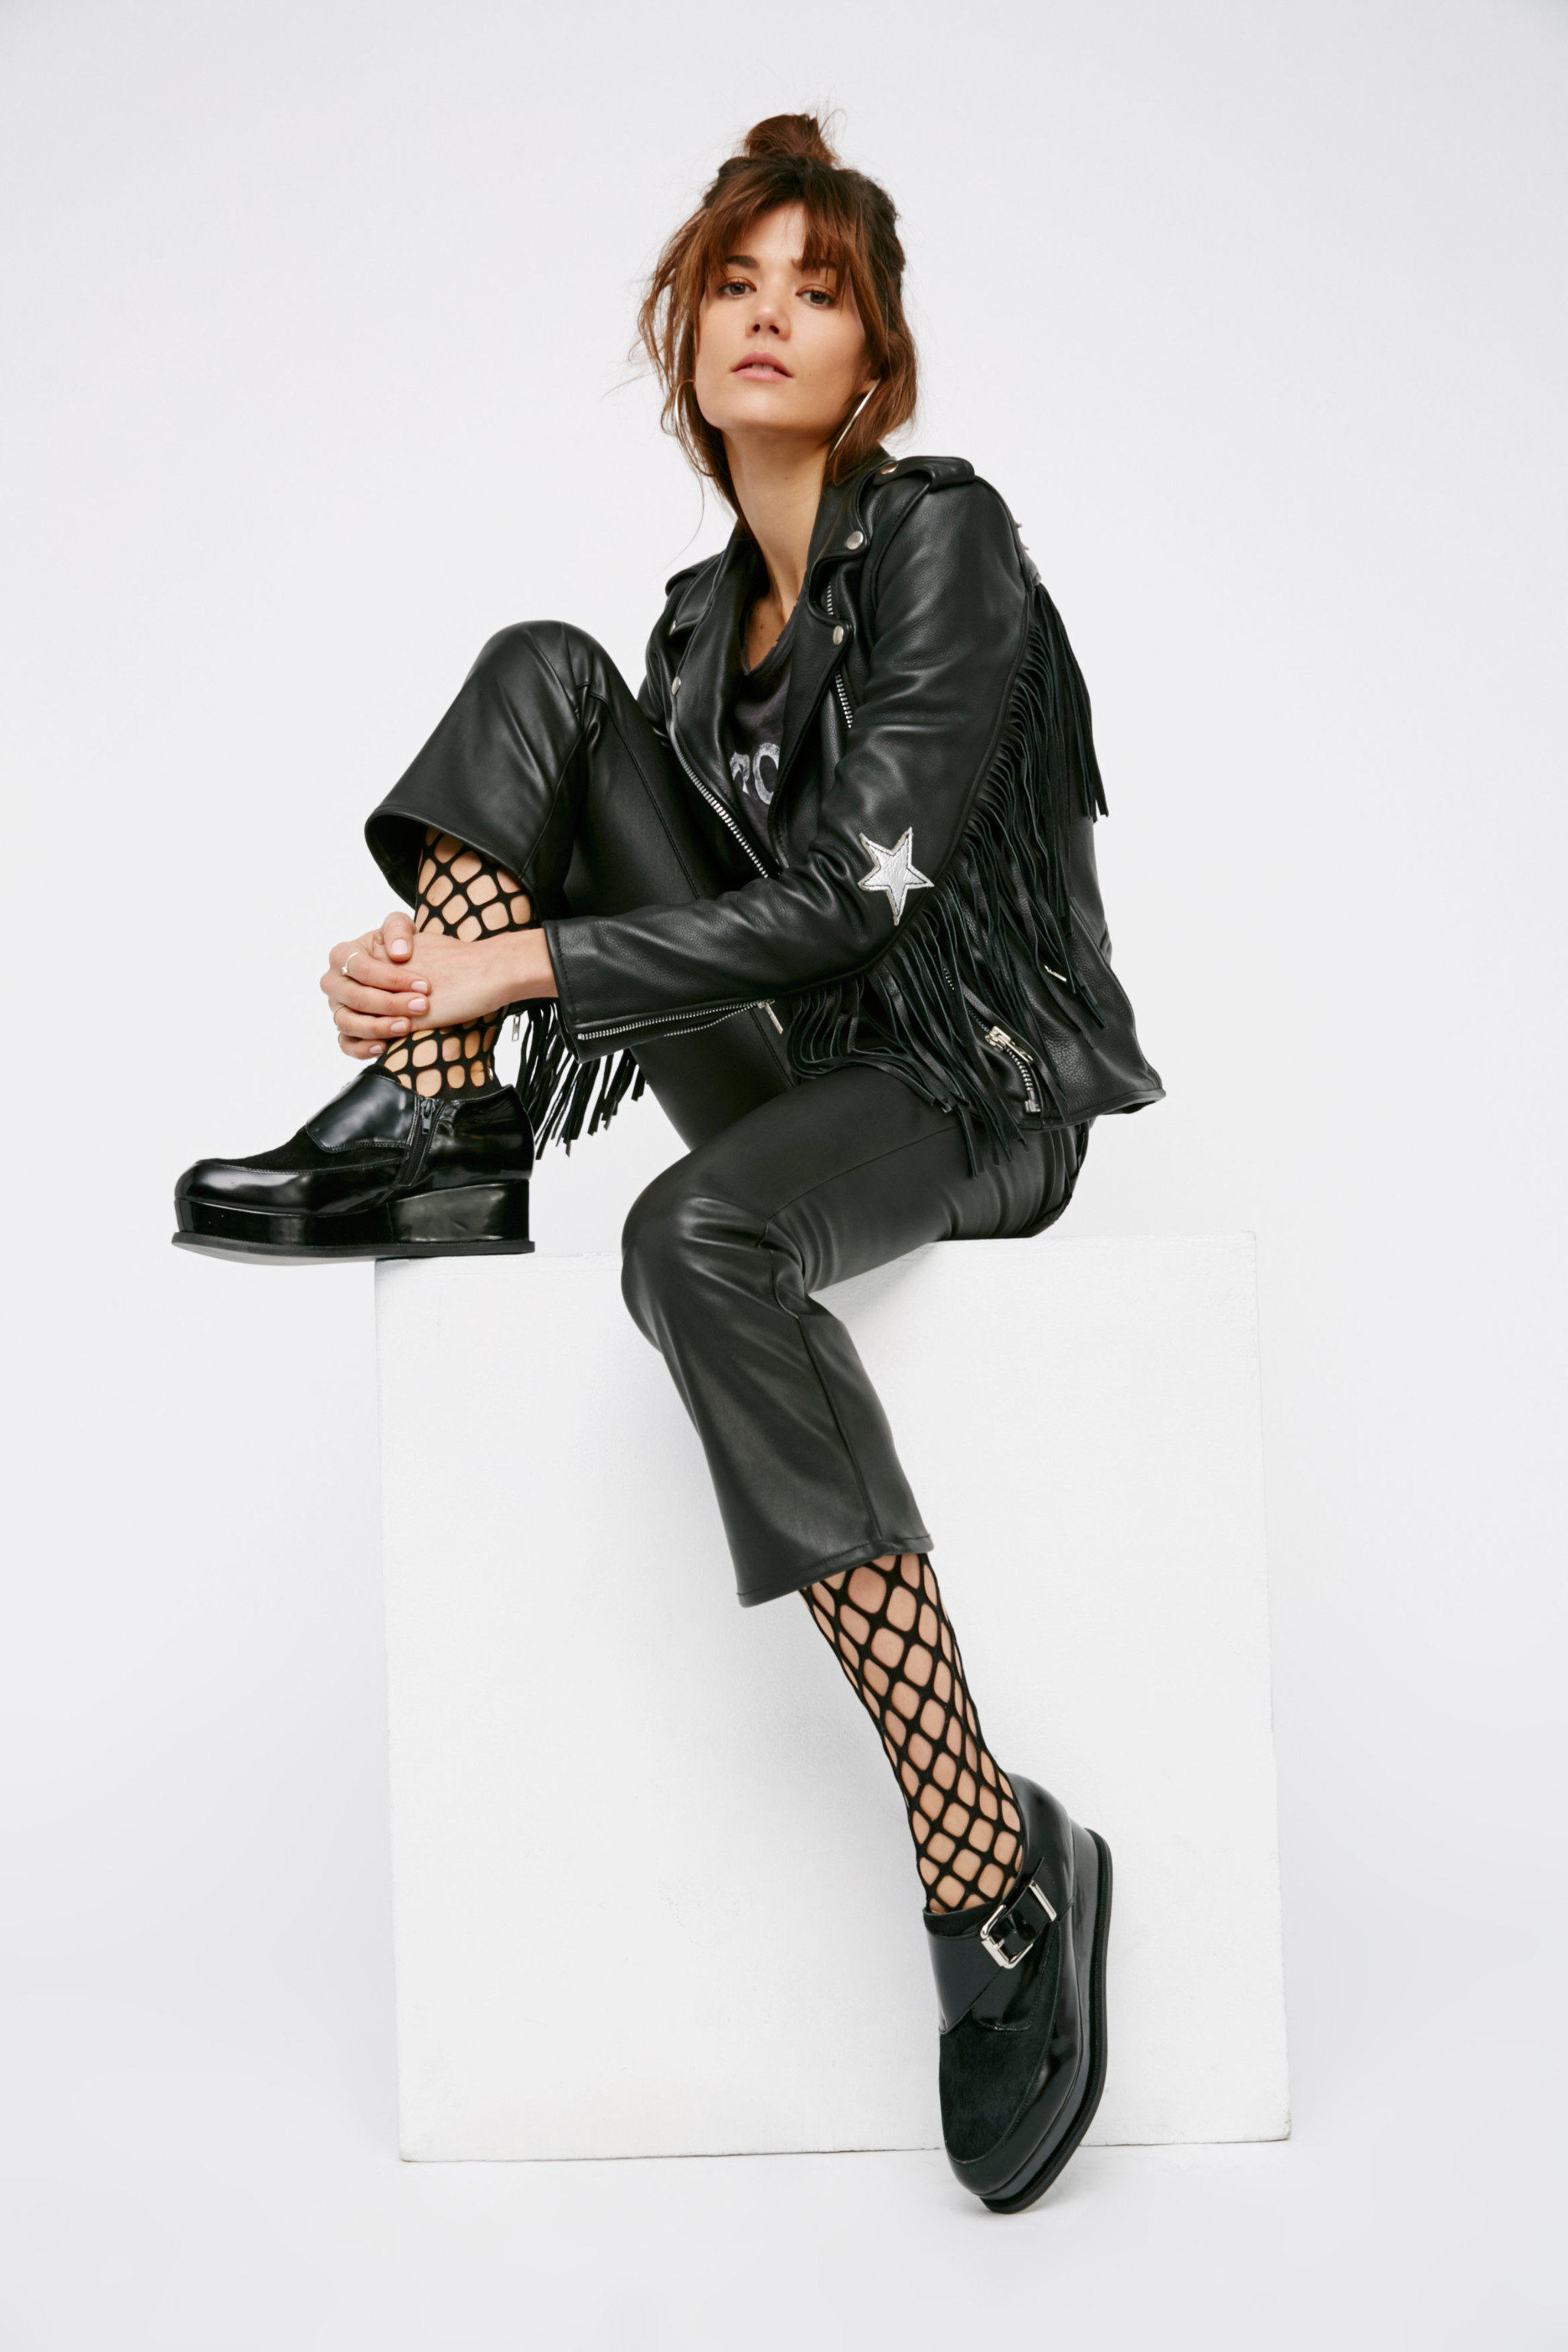 Style + Design person black clothing leather footwear sleeve jacket photo shoot fashion spring textile outerwear model leather jacket leg air trousers material collar formal wear